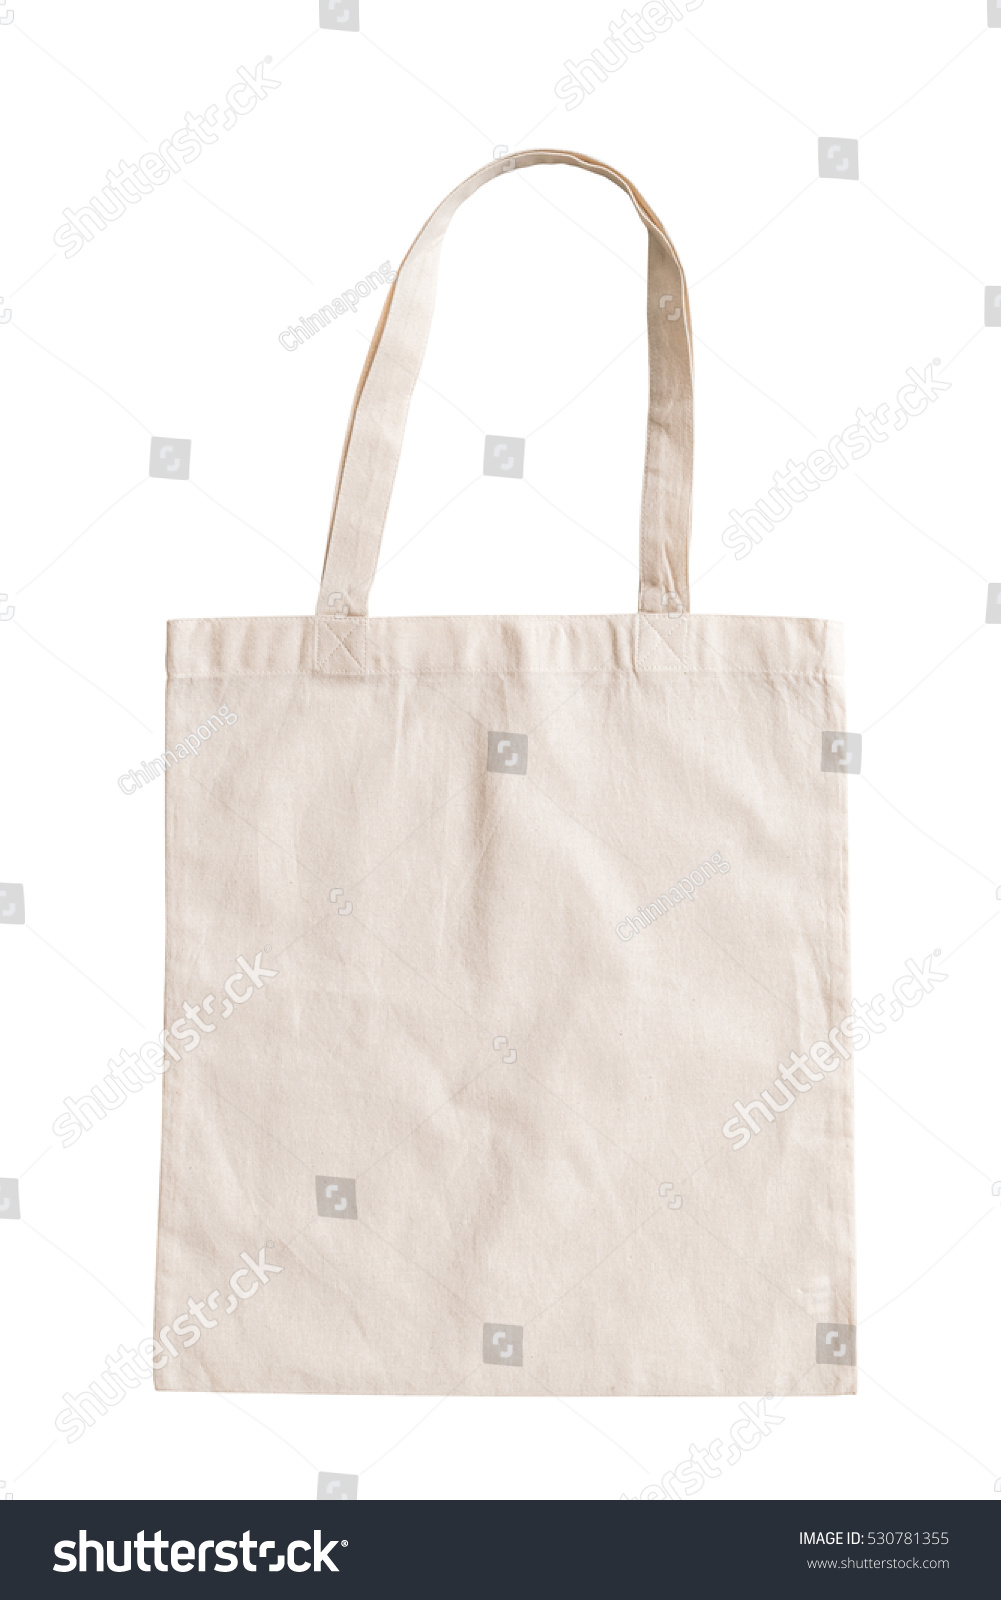 Tote bag canvas fabric cloth shopping sack mockup blank template isolated on white background (clipping path)